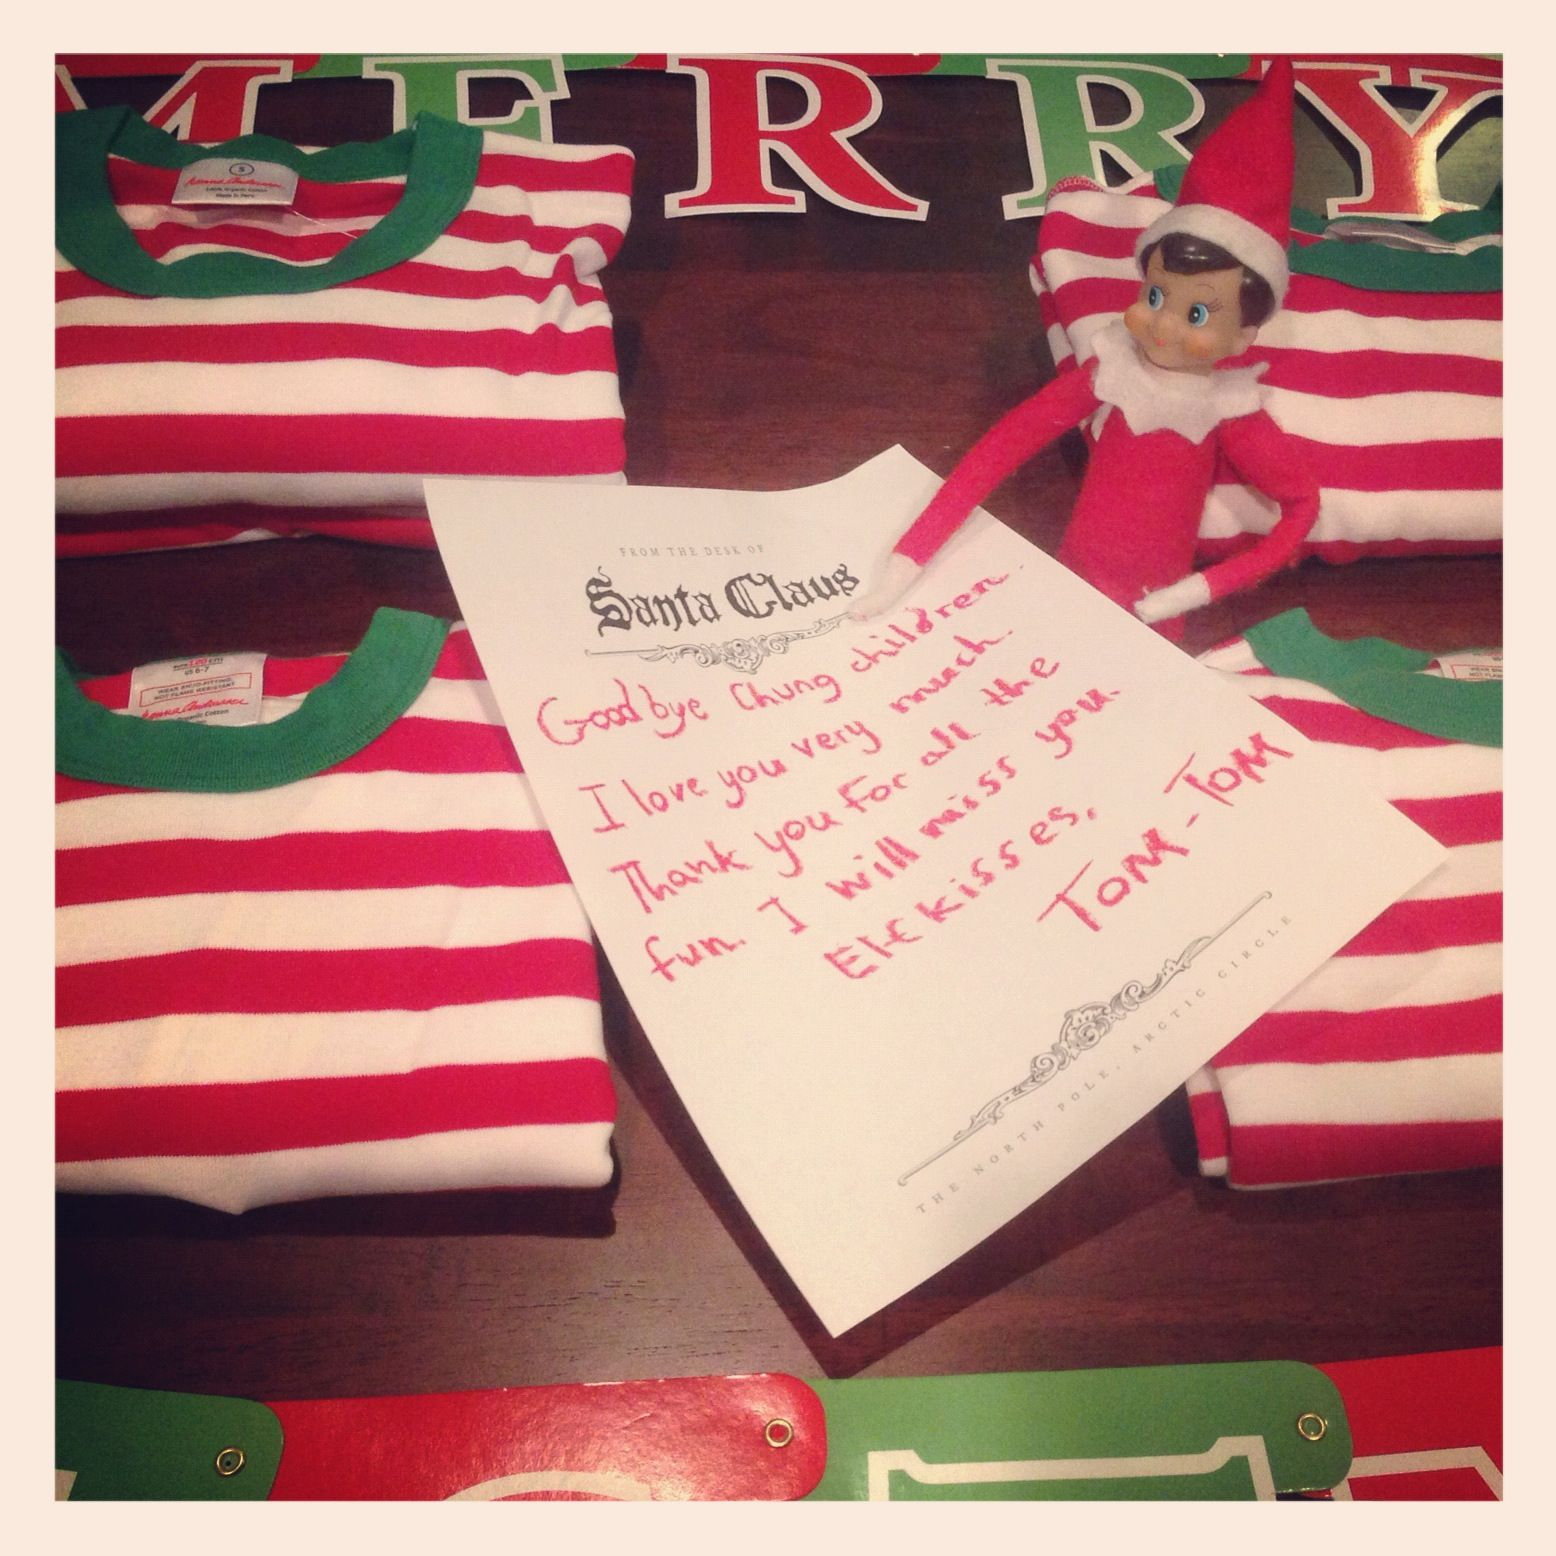 Goodbye Note From Elf On The Shelf With New Pajamas On Christmas